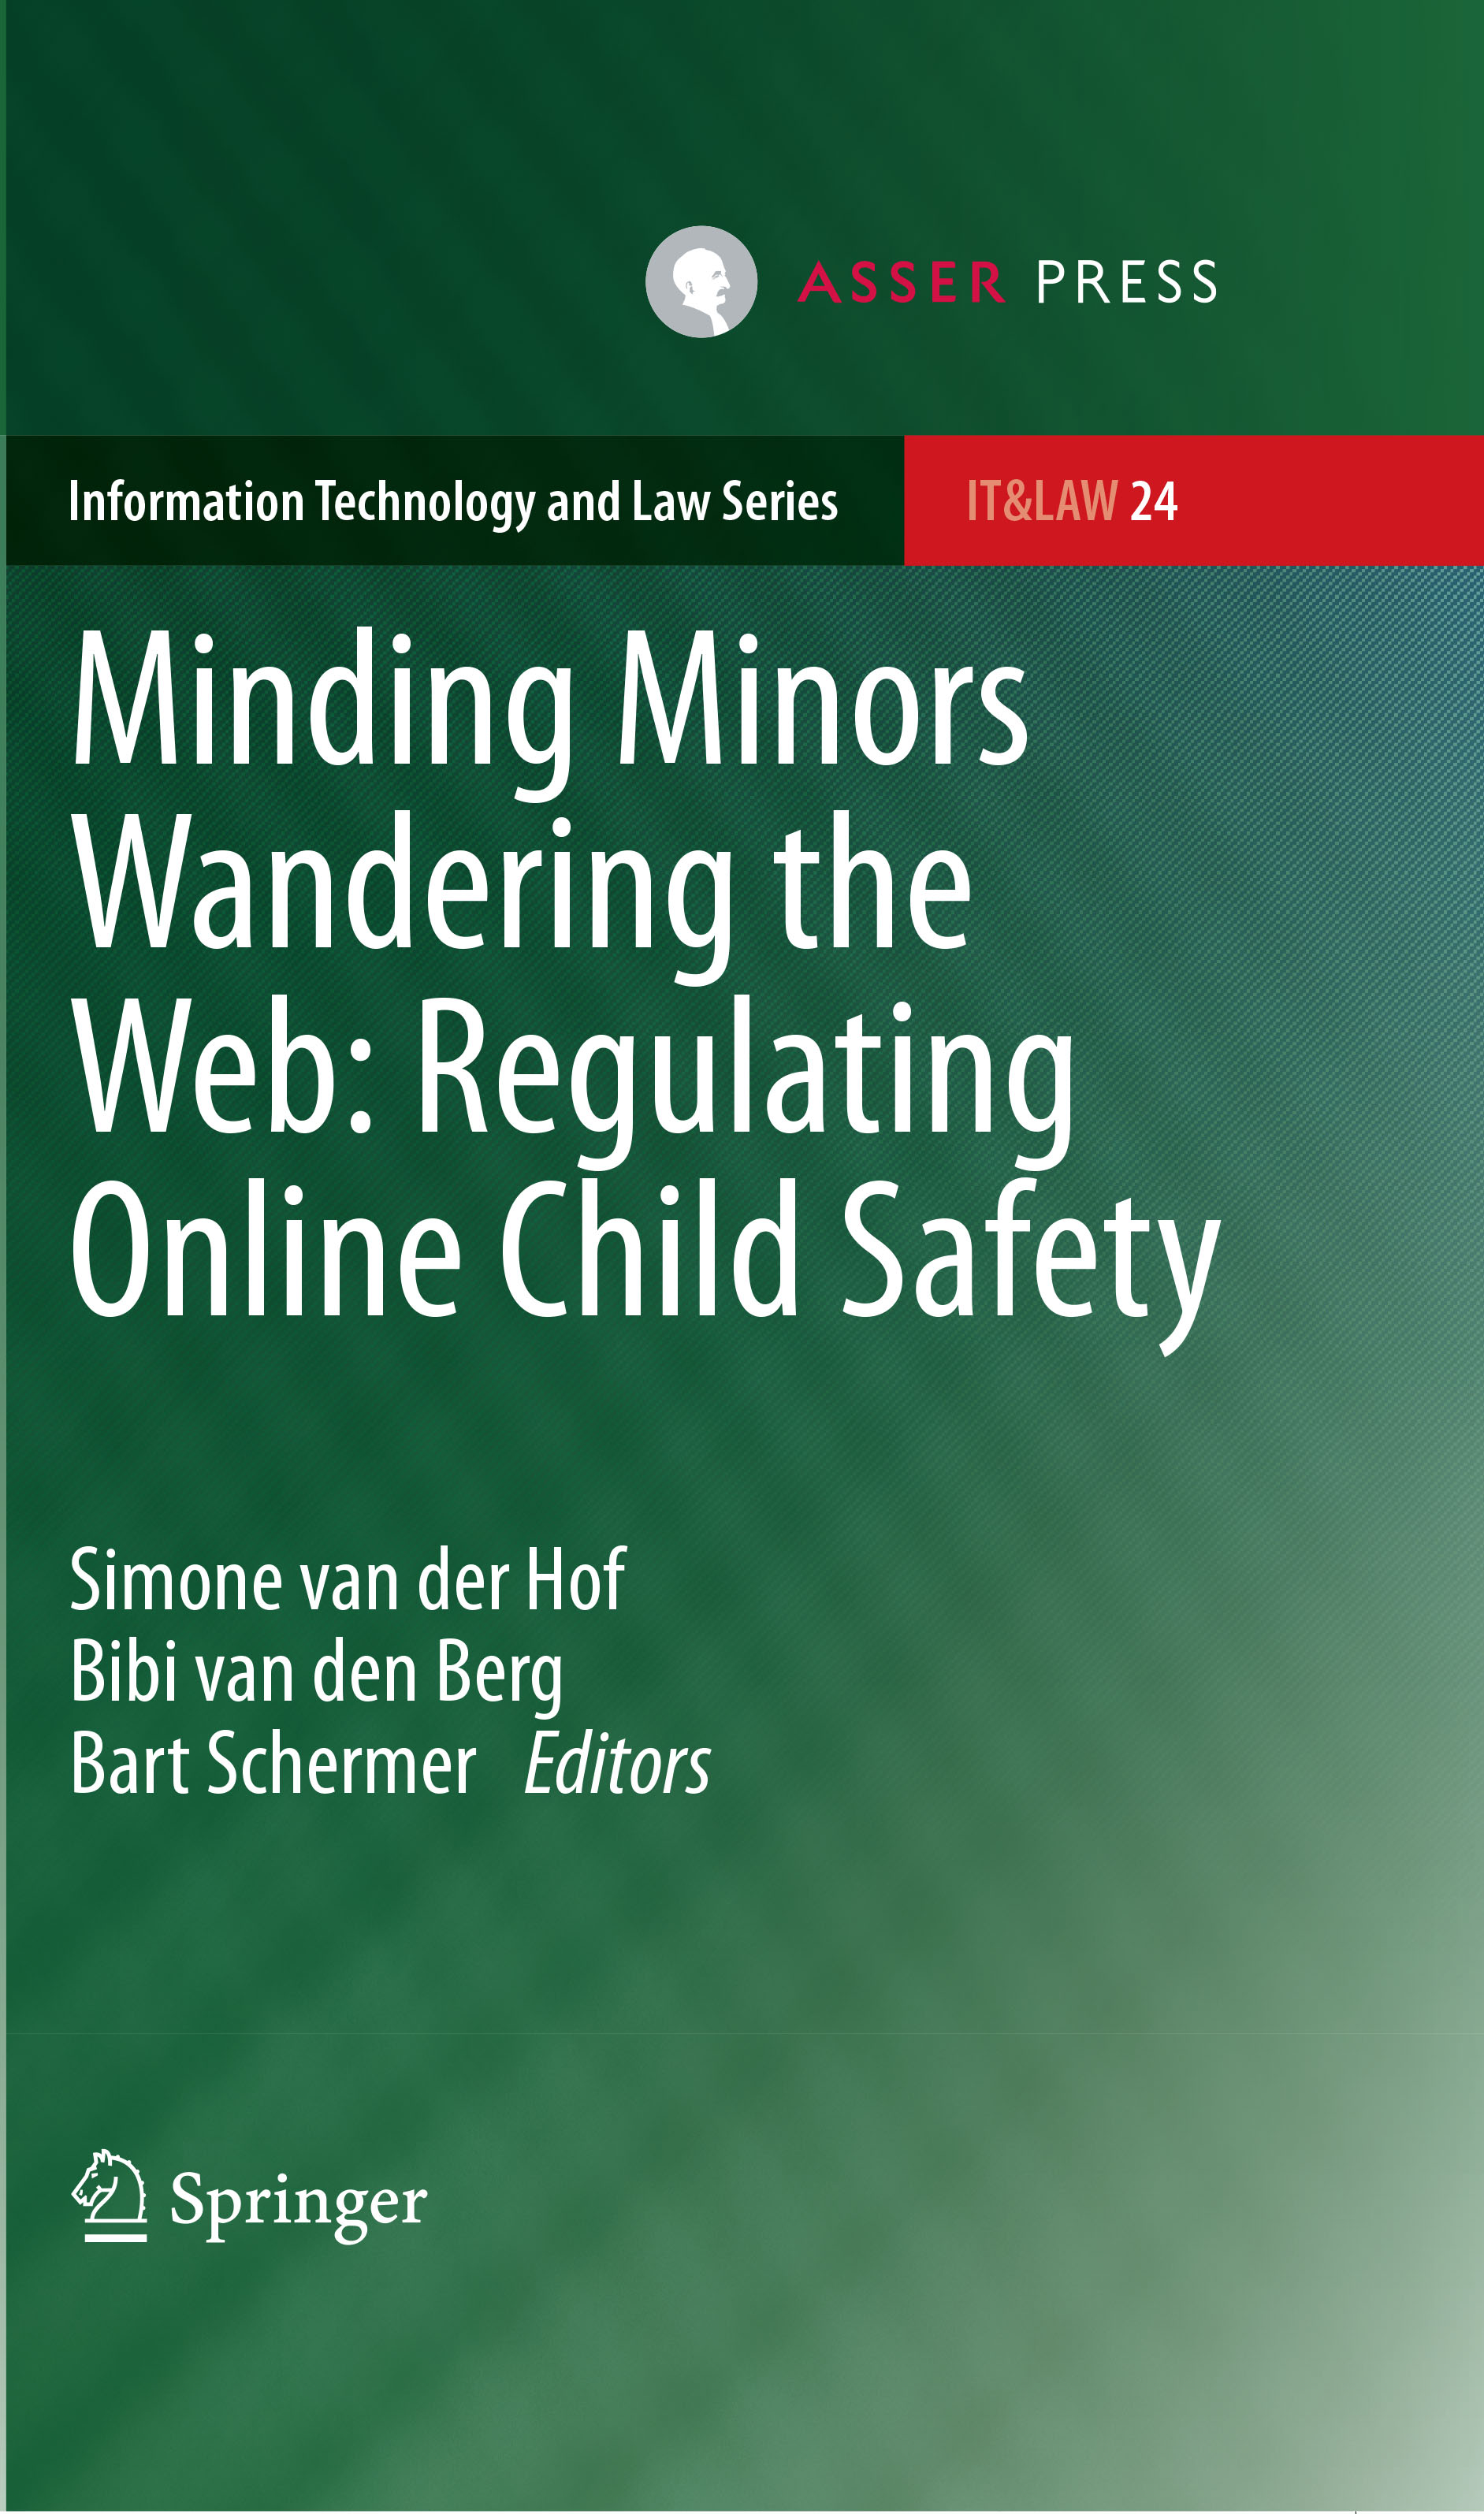 Minding Minors Wandering the Web – Regulating Online Child Safety